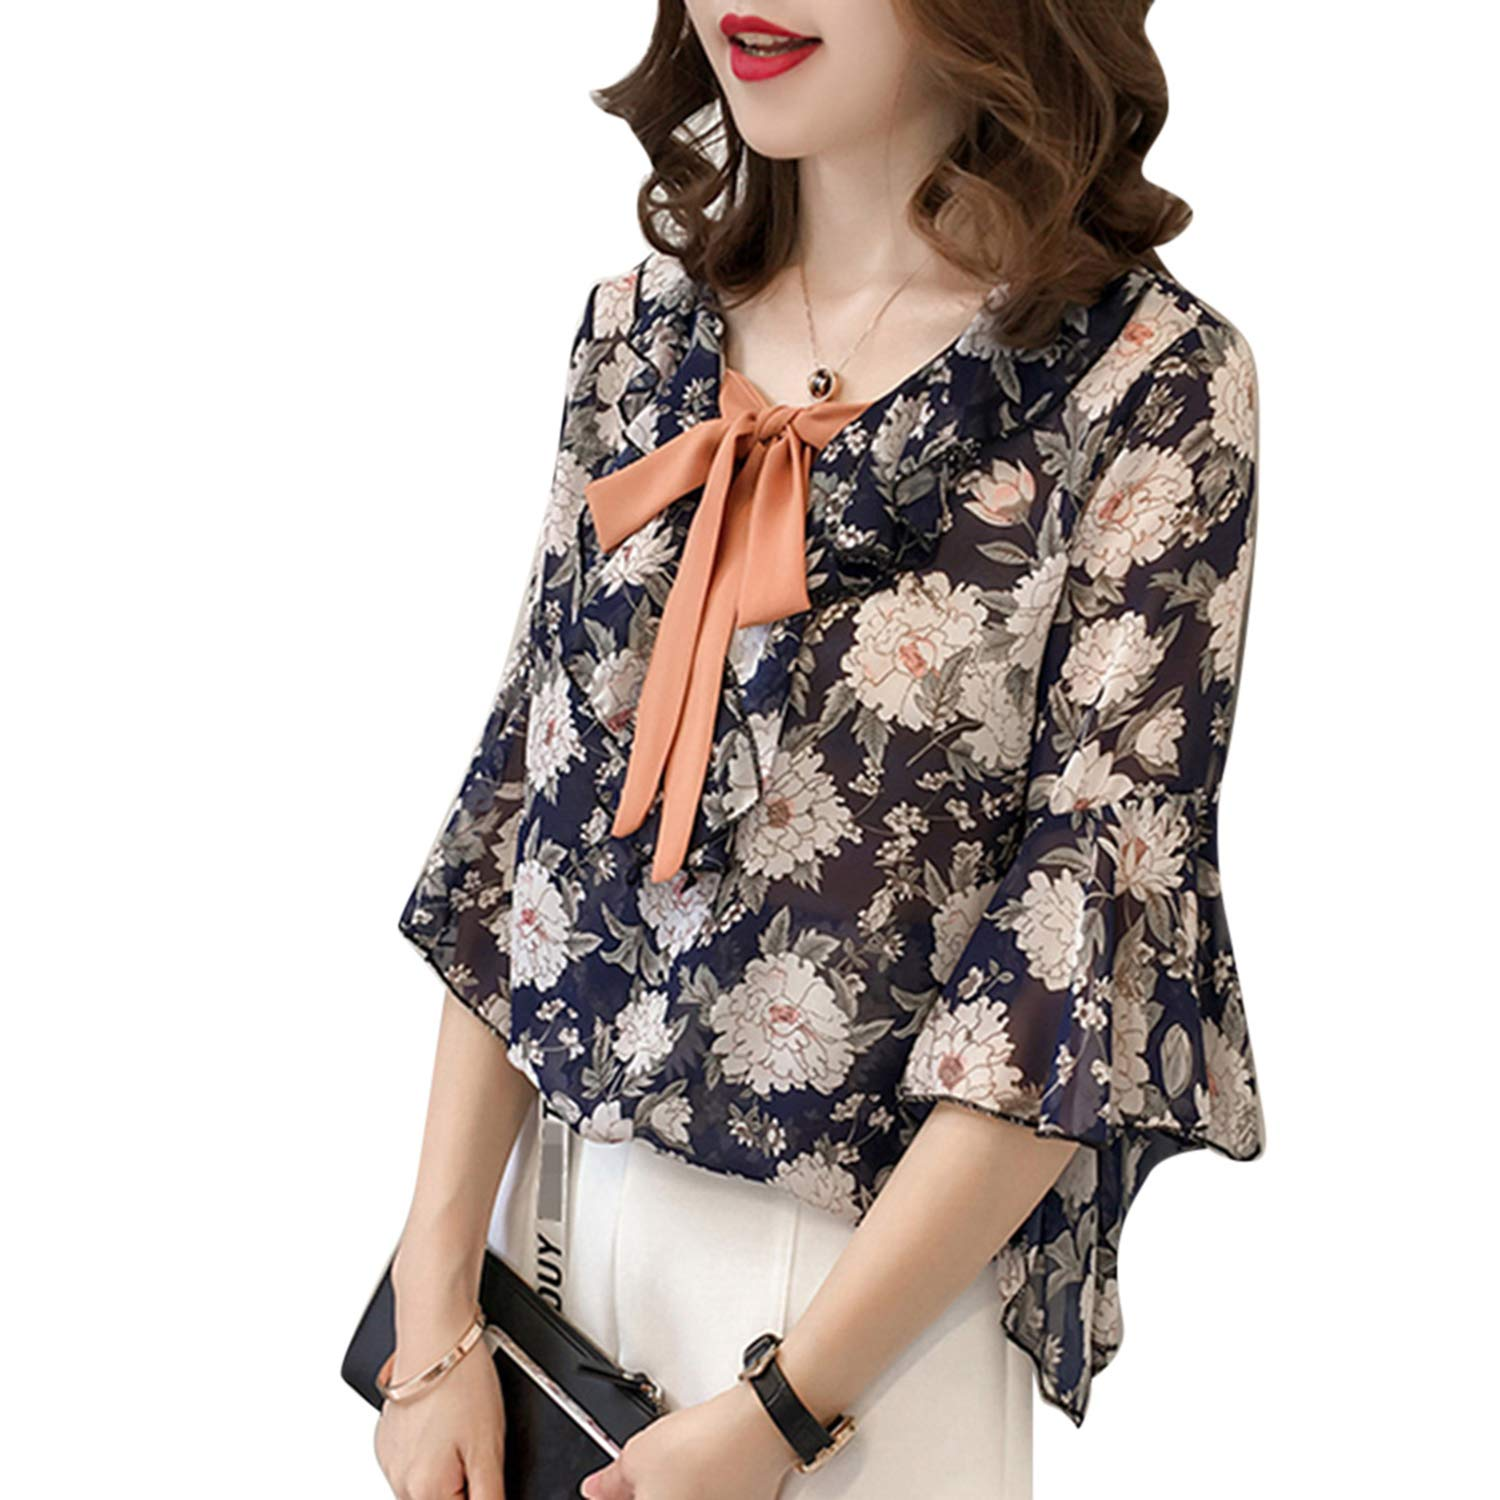 T T Store Bow Tie Ruffles Chiffon Blouses Women Floral Printed Short Sleeve Boho Summer Loose Ladies Office Blusas(Blue,M)